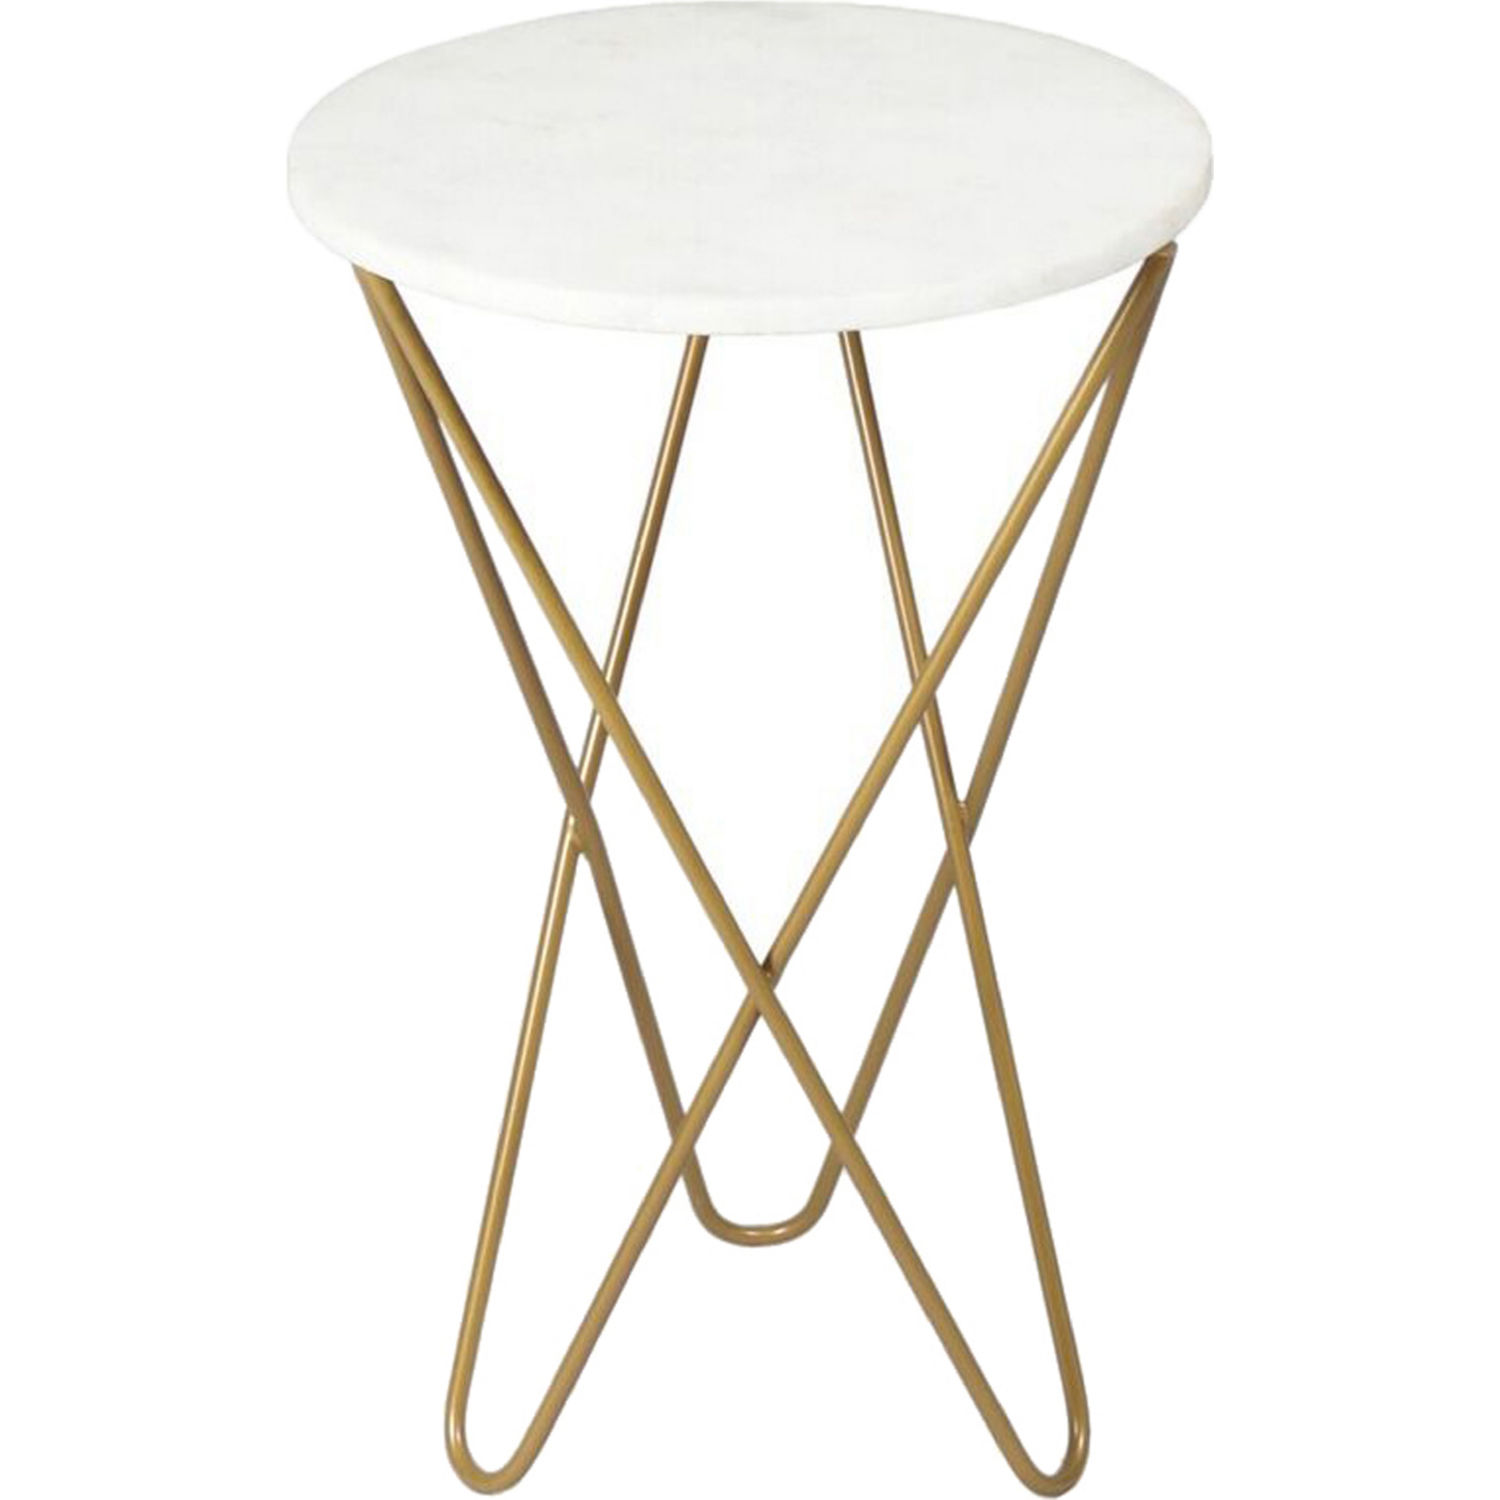 Renwil Cinda Accent Table In White Marble On Gold Hairpin Legs Side Table Accent Table Decor Modern Table Base